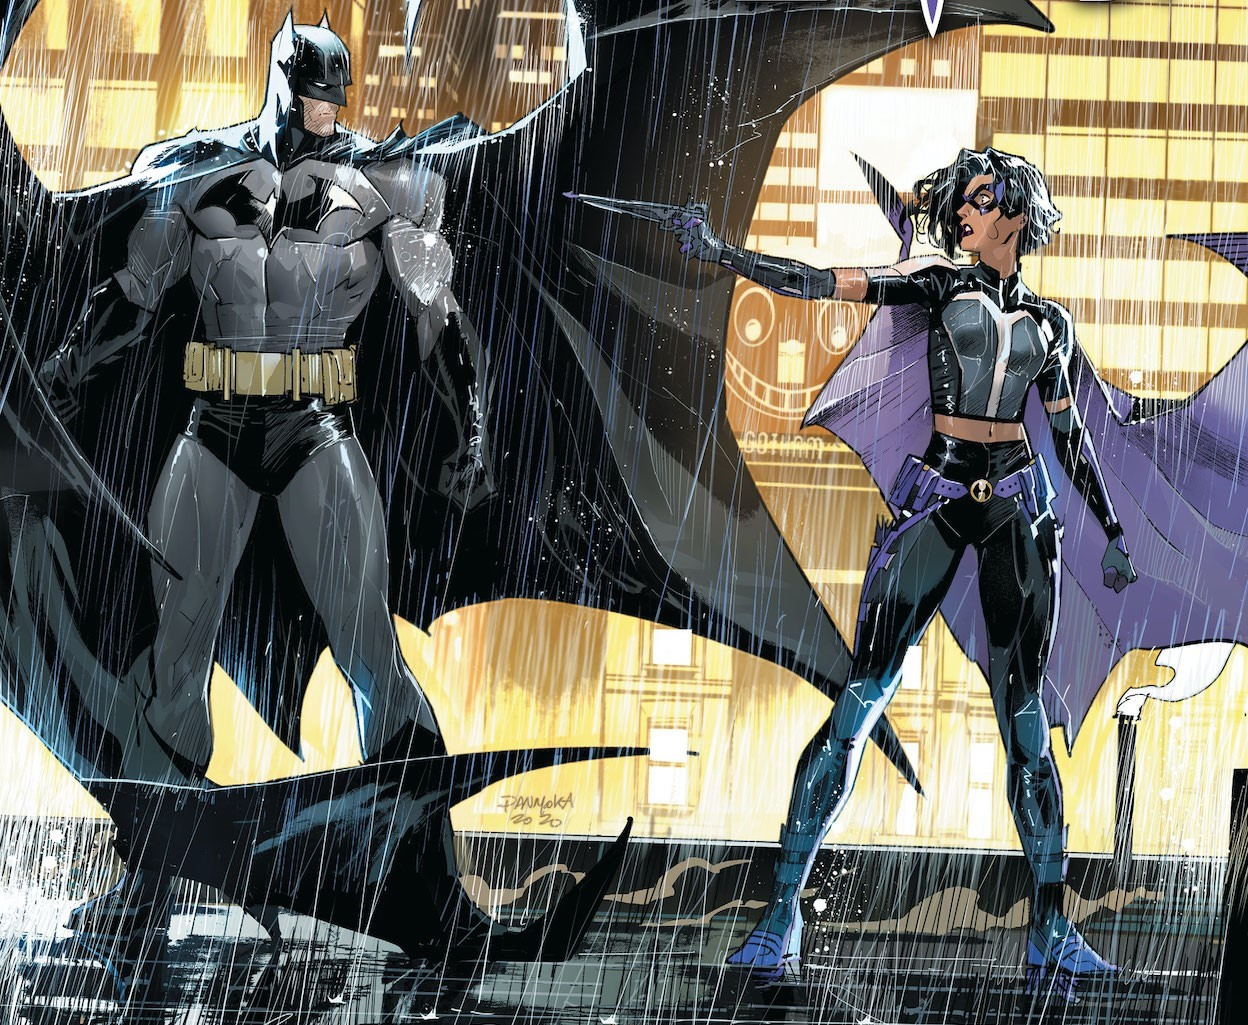 'Detective Comics' #1036 thickens the murder mystery plot